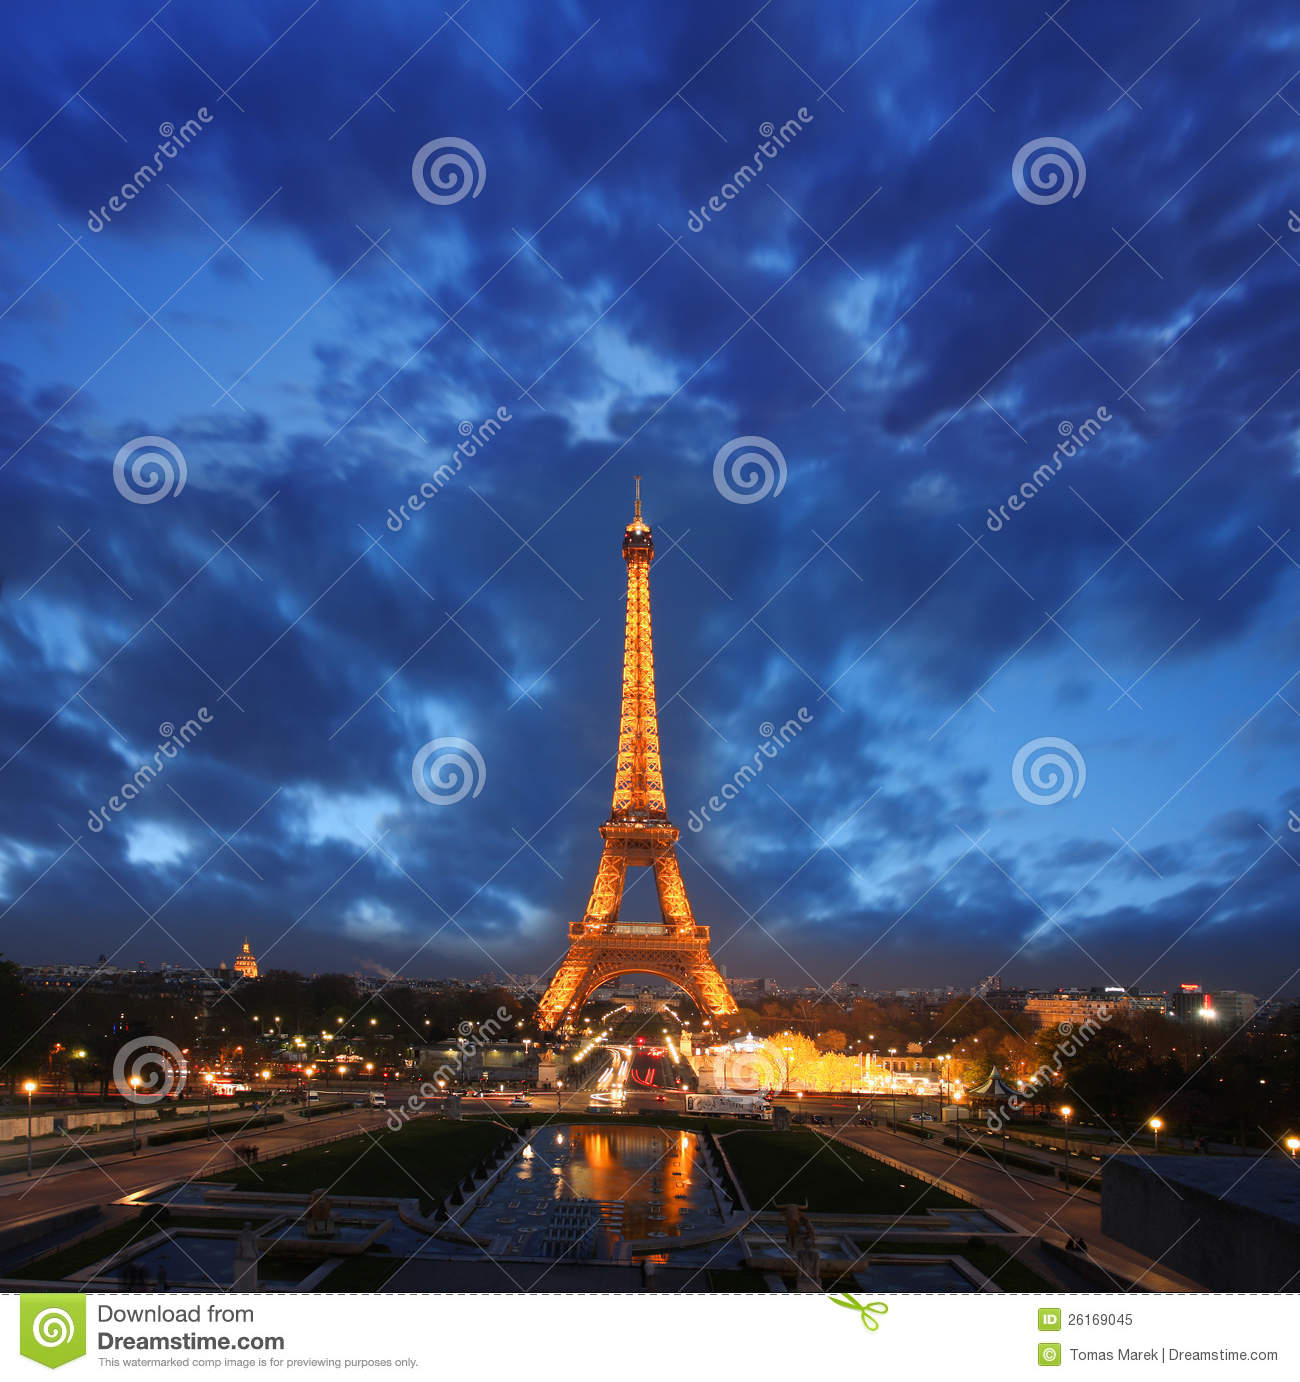 Eiffel tower at night in paris france editorial image for Paris night time